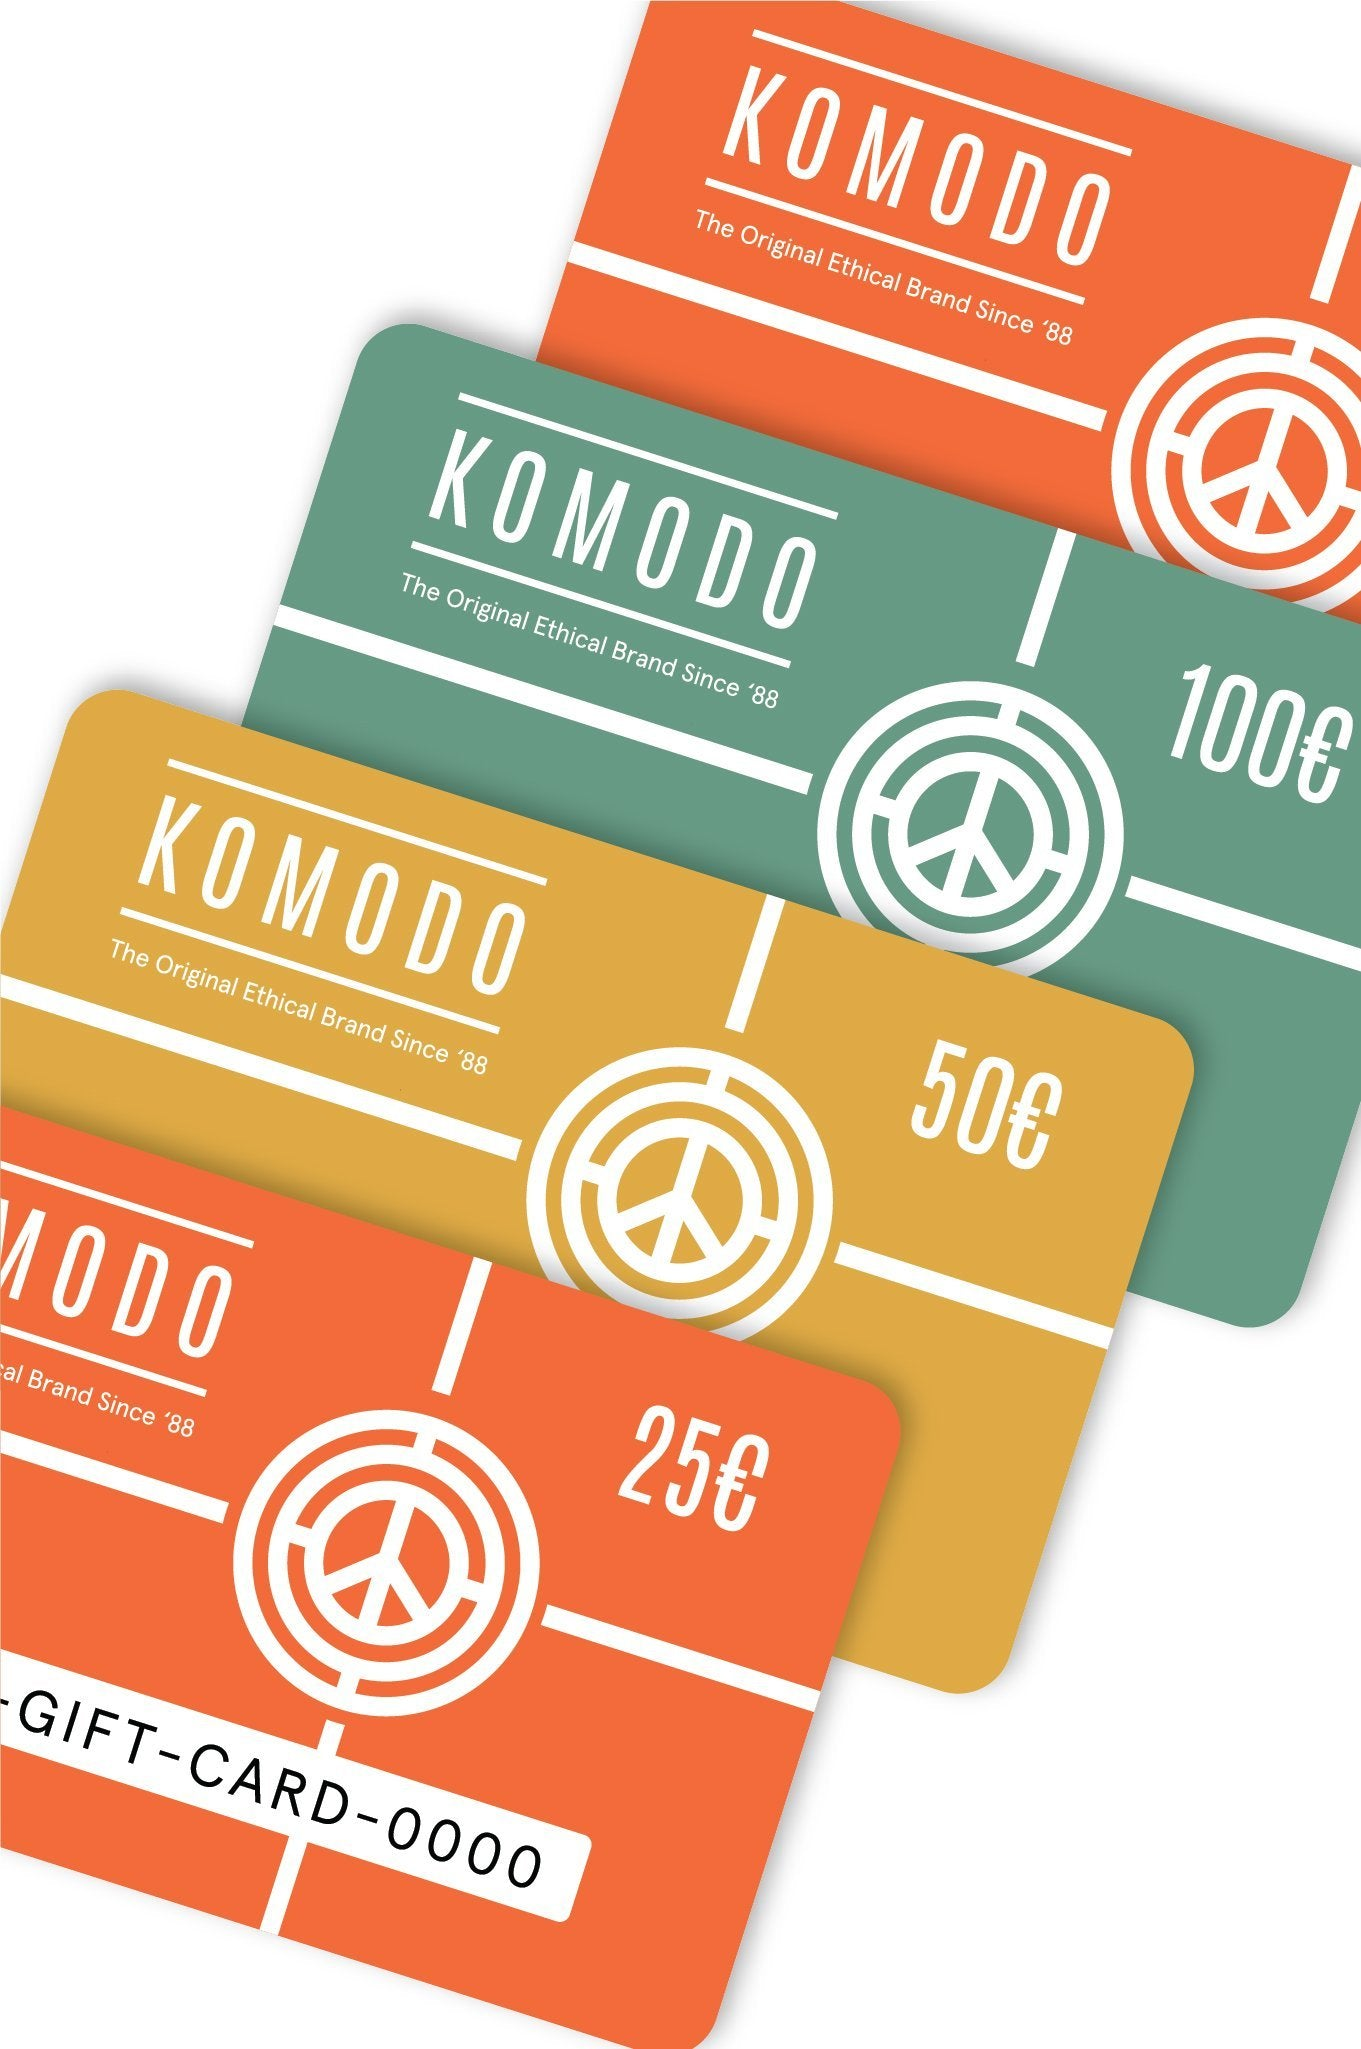 Gift Cards - Komodo Fashion